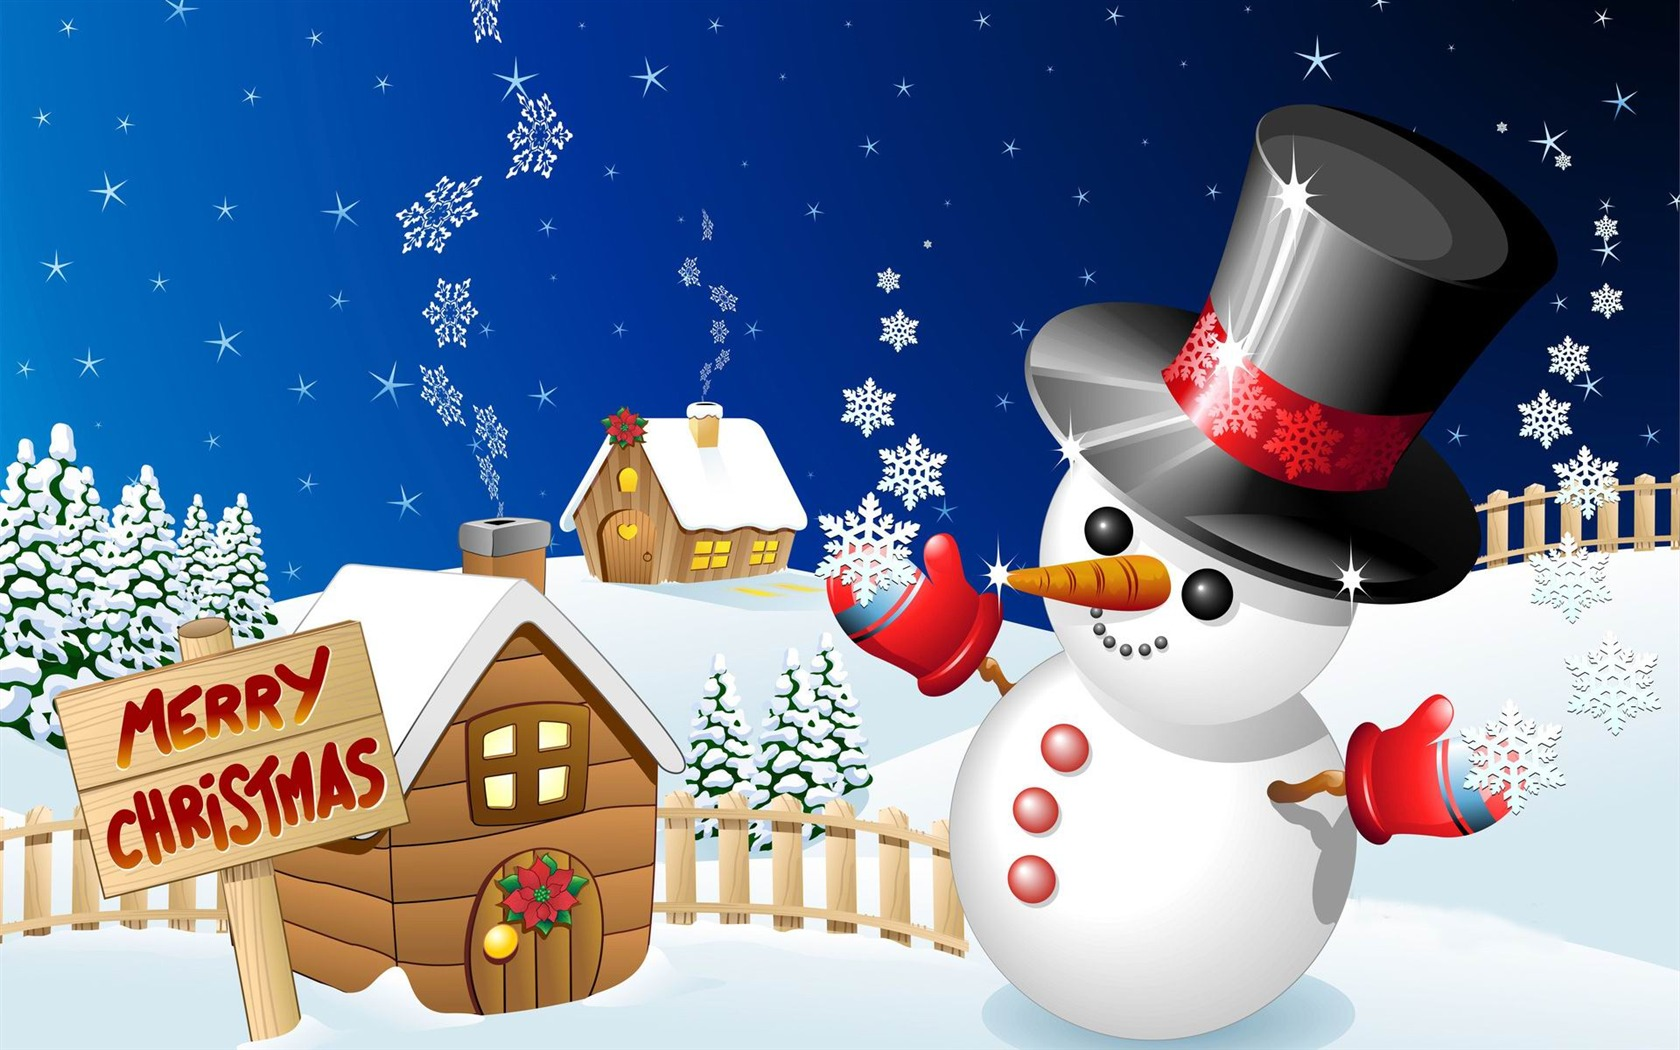 Cute Snowman Christmas Wallpaper Wallpapers Gallery